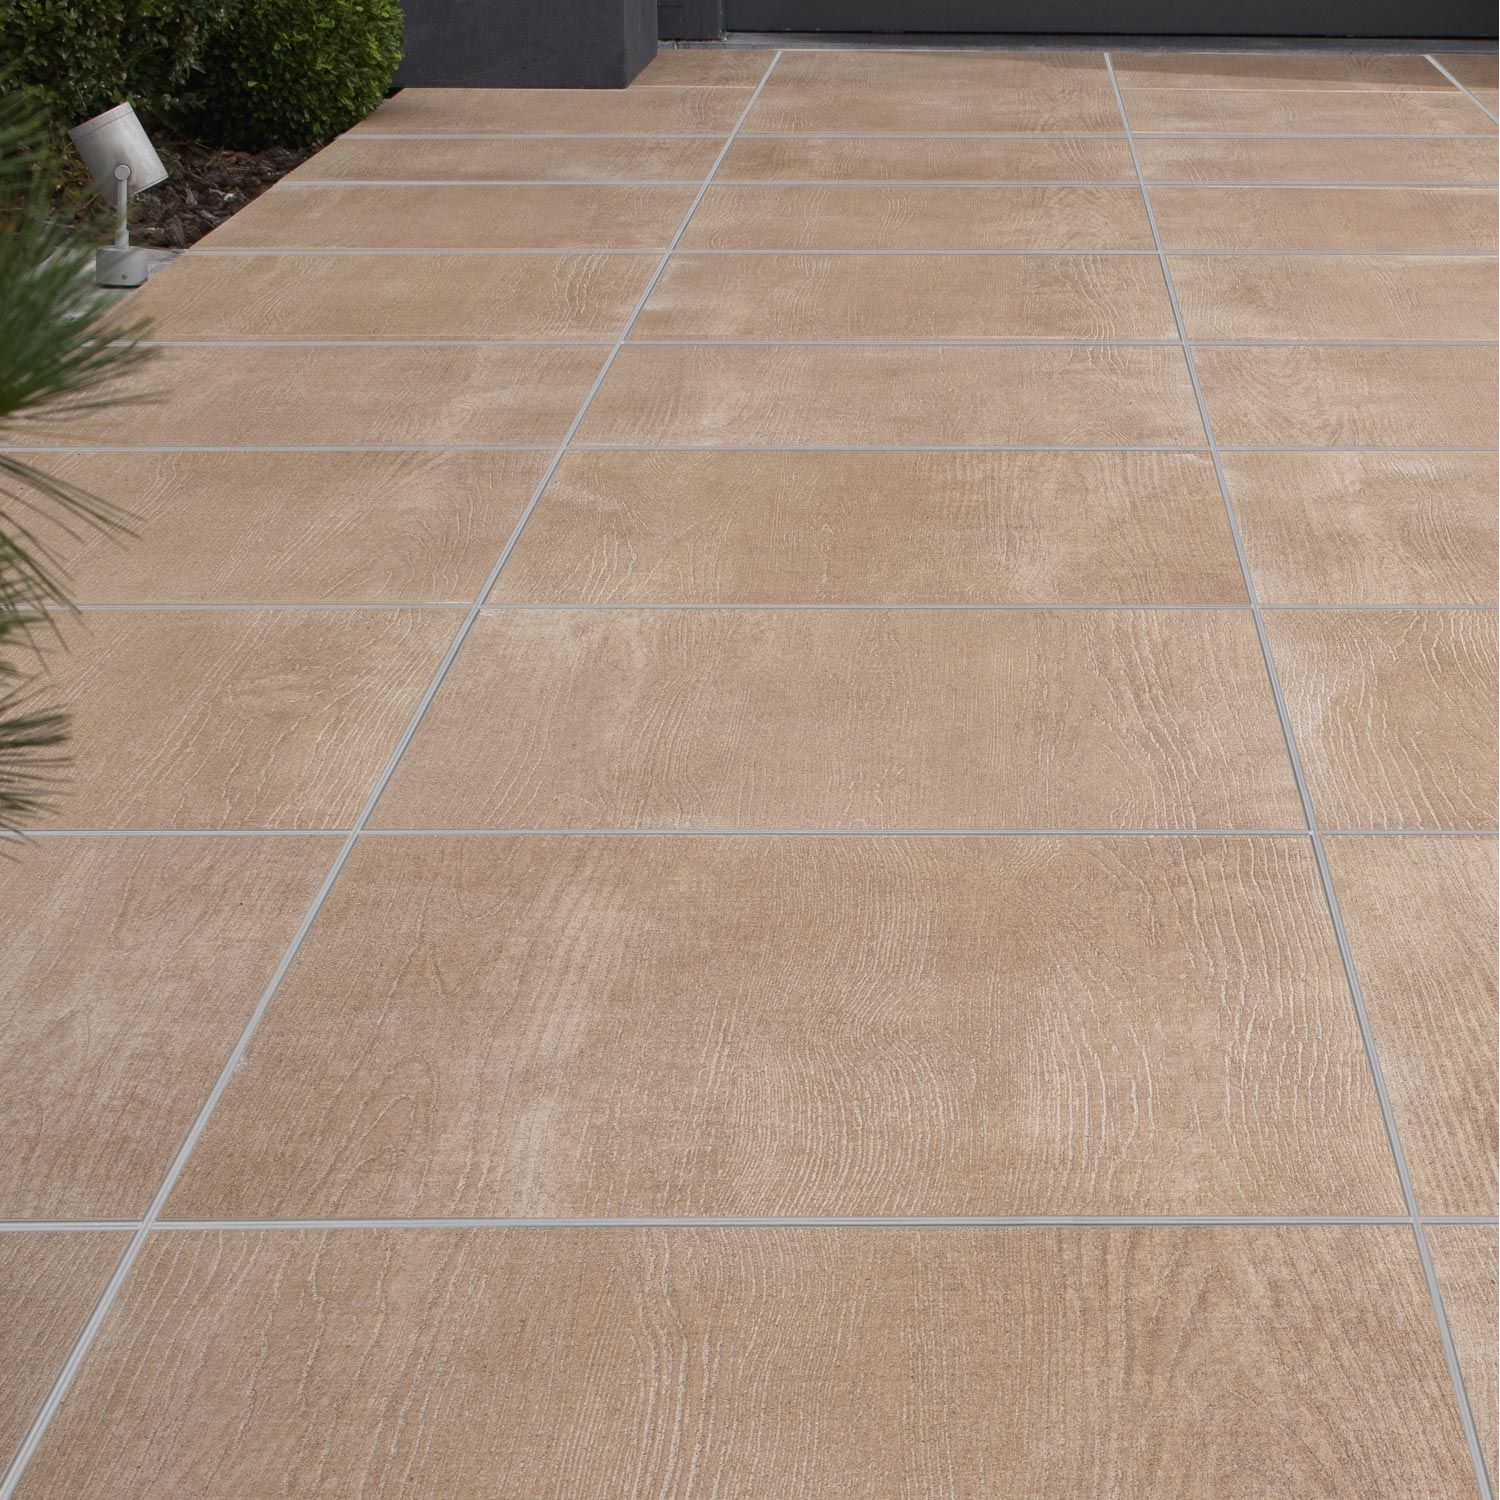 Carrelage Pleine Masse Leroy Merlin Carrelage Clipsable Leroy Merlin Beautiful Lame Pvc Clipsable